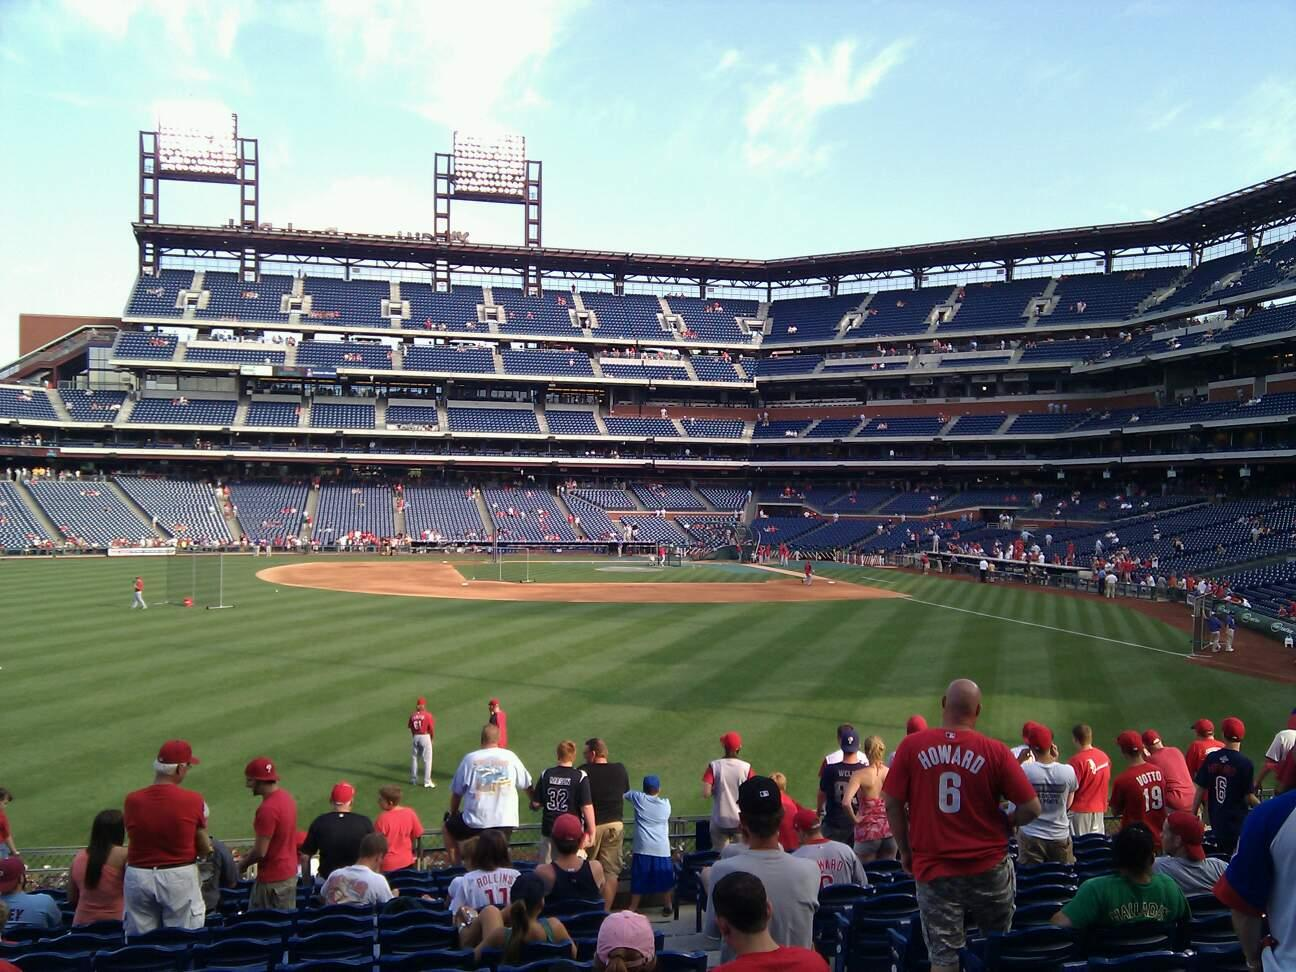 Citizens Bank Park Secção 144 Fila 15 Lugar 4